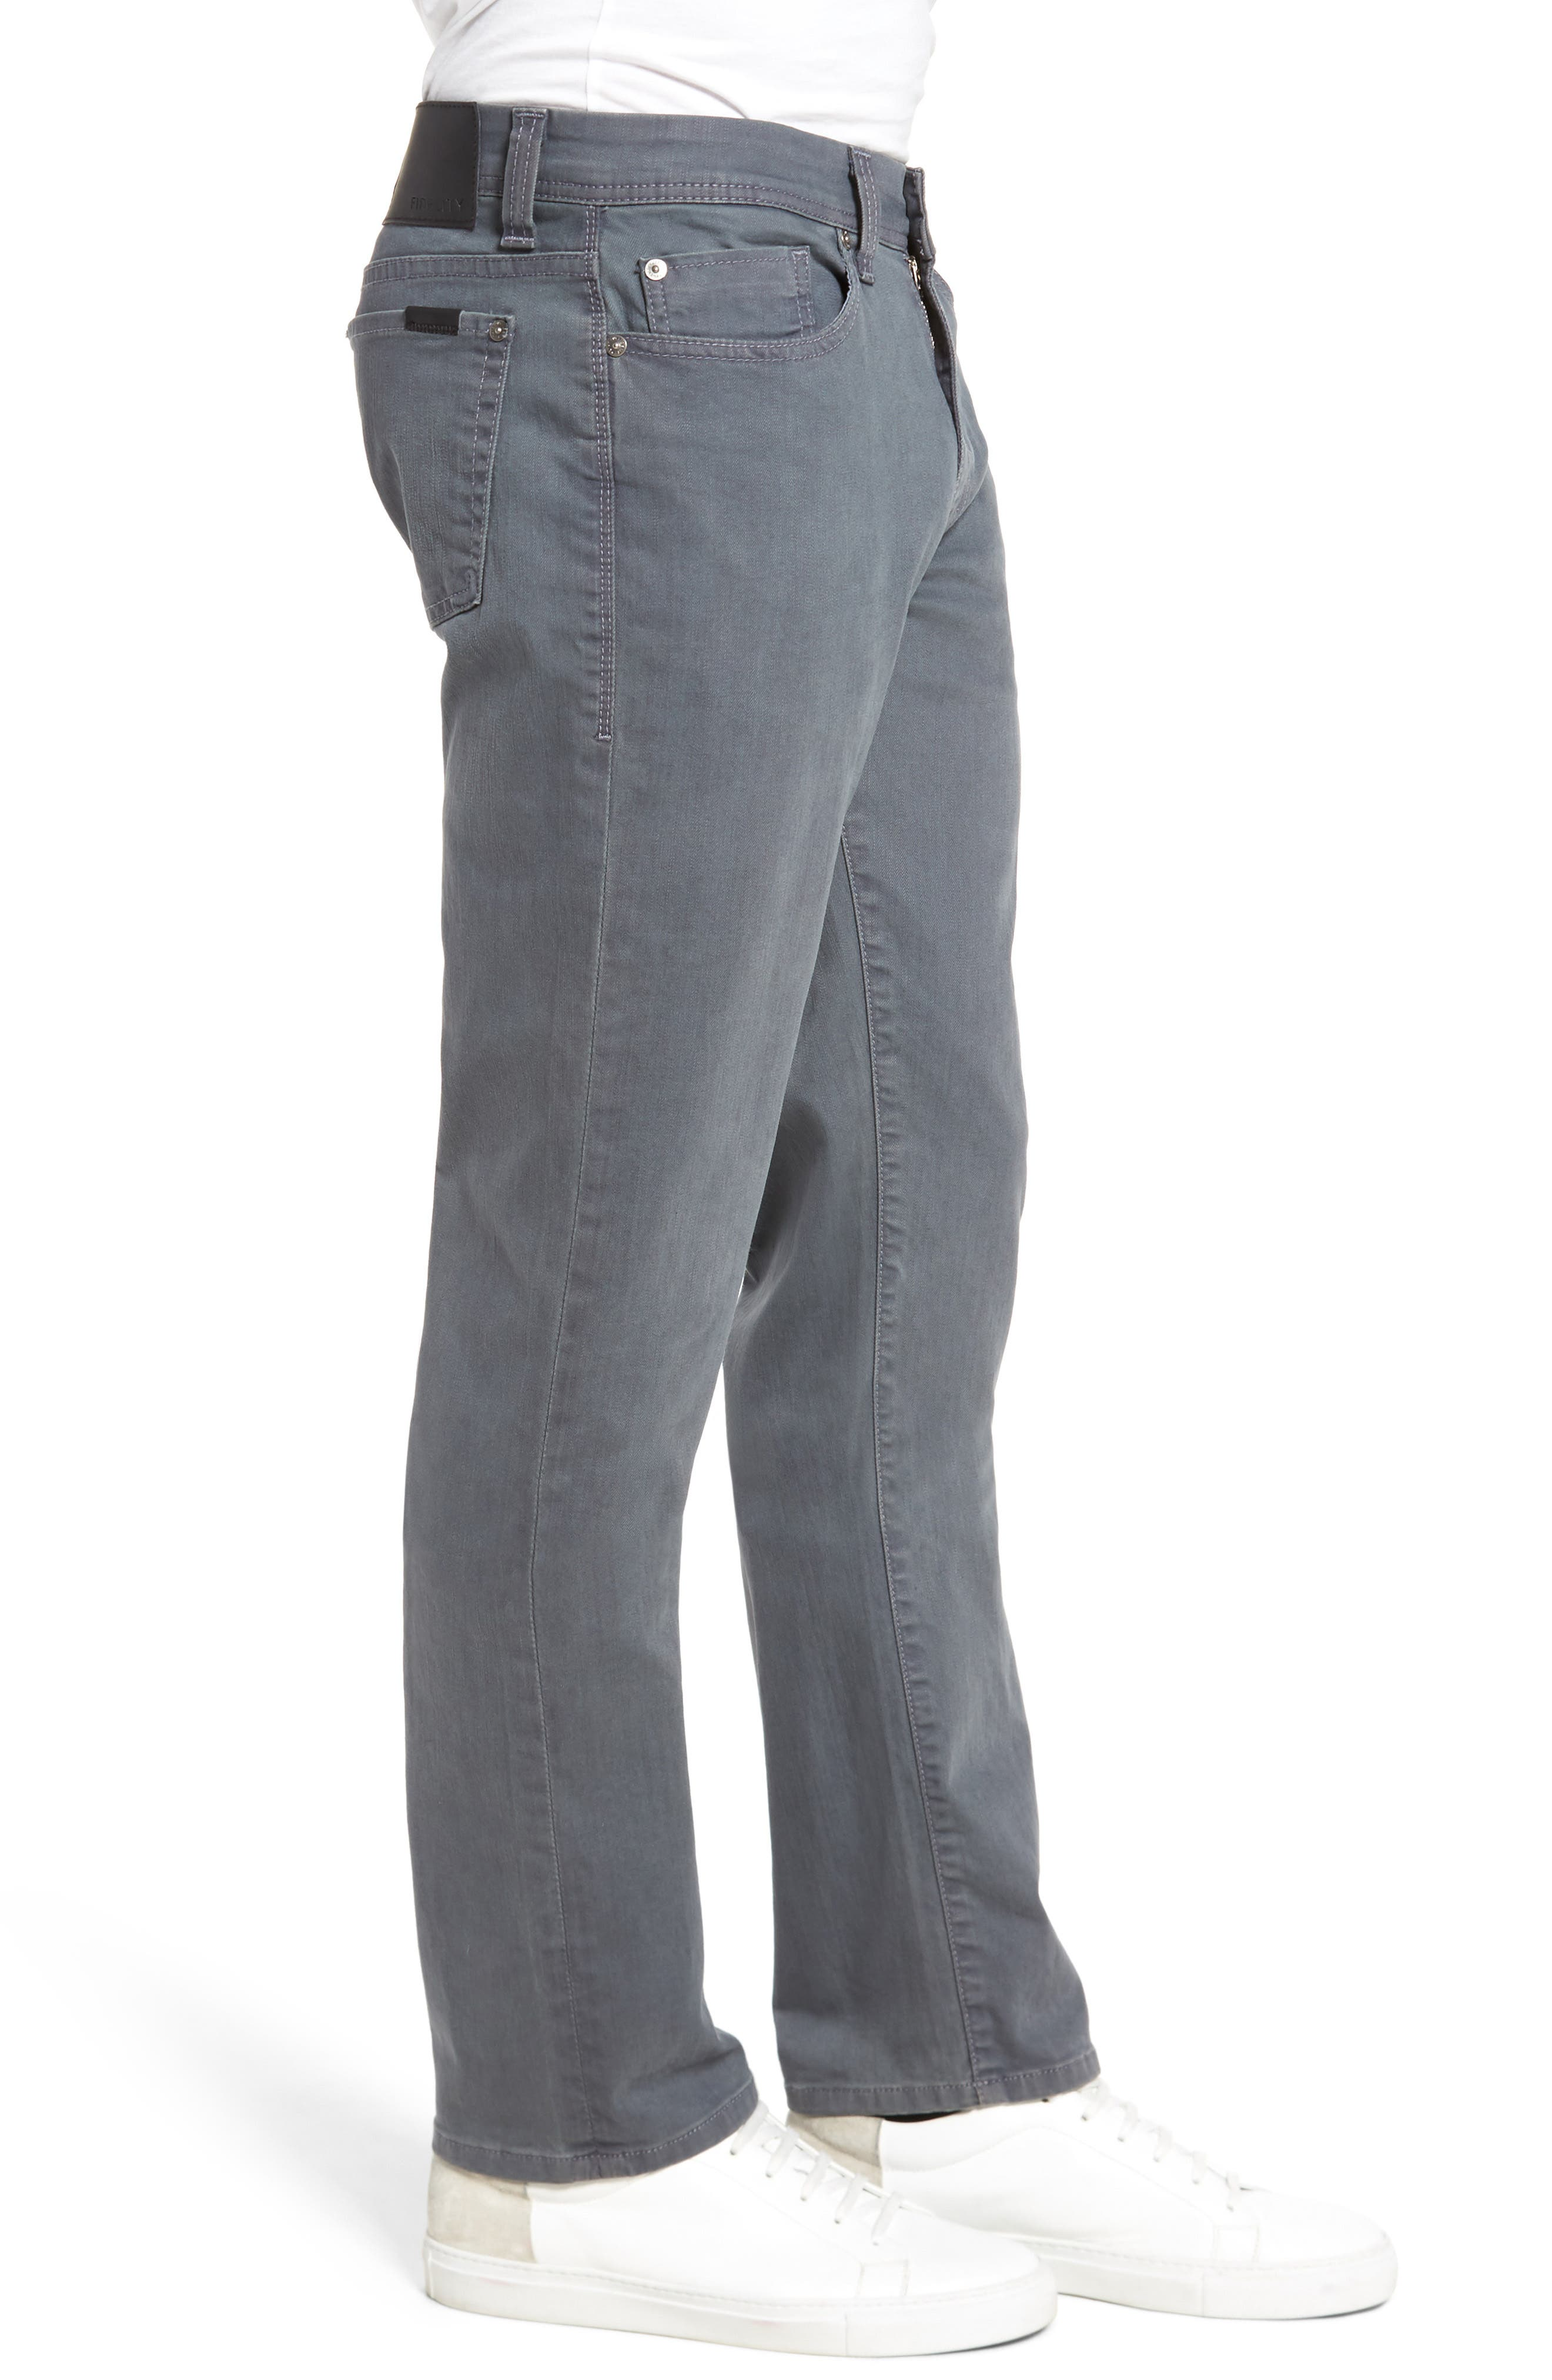 Jimmy Slim Straight Fit Jeans,                             Alternate thumbnail 3, color,                             Oyster